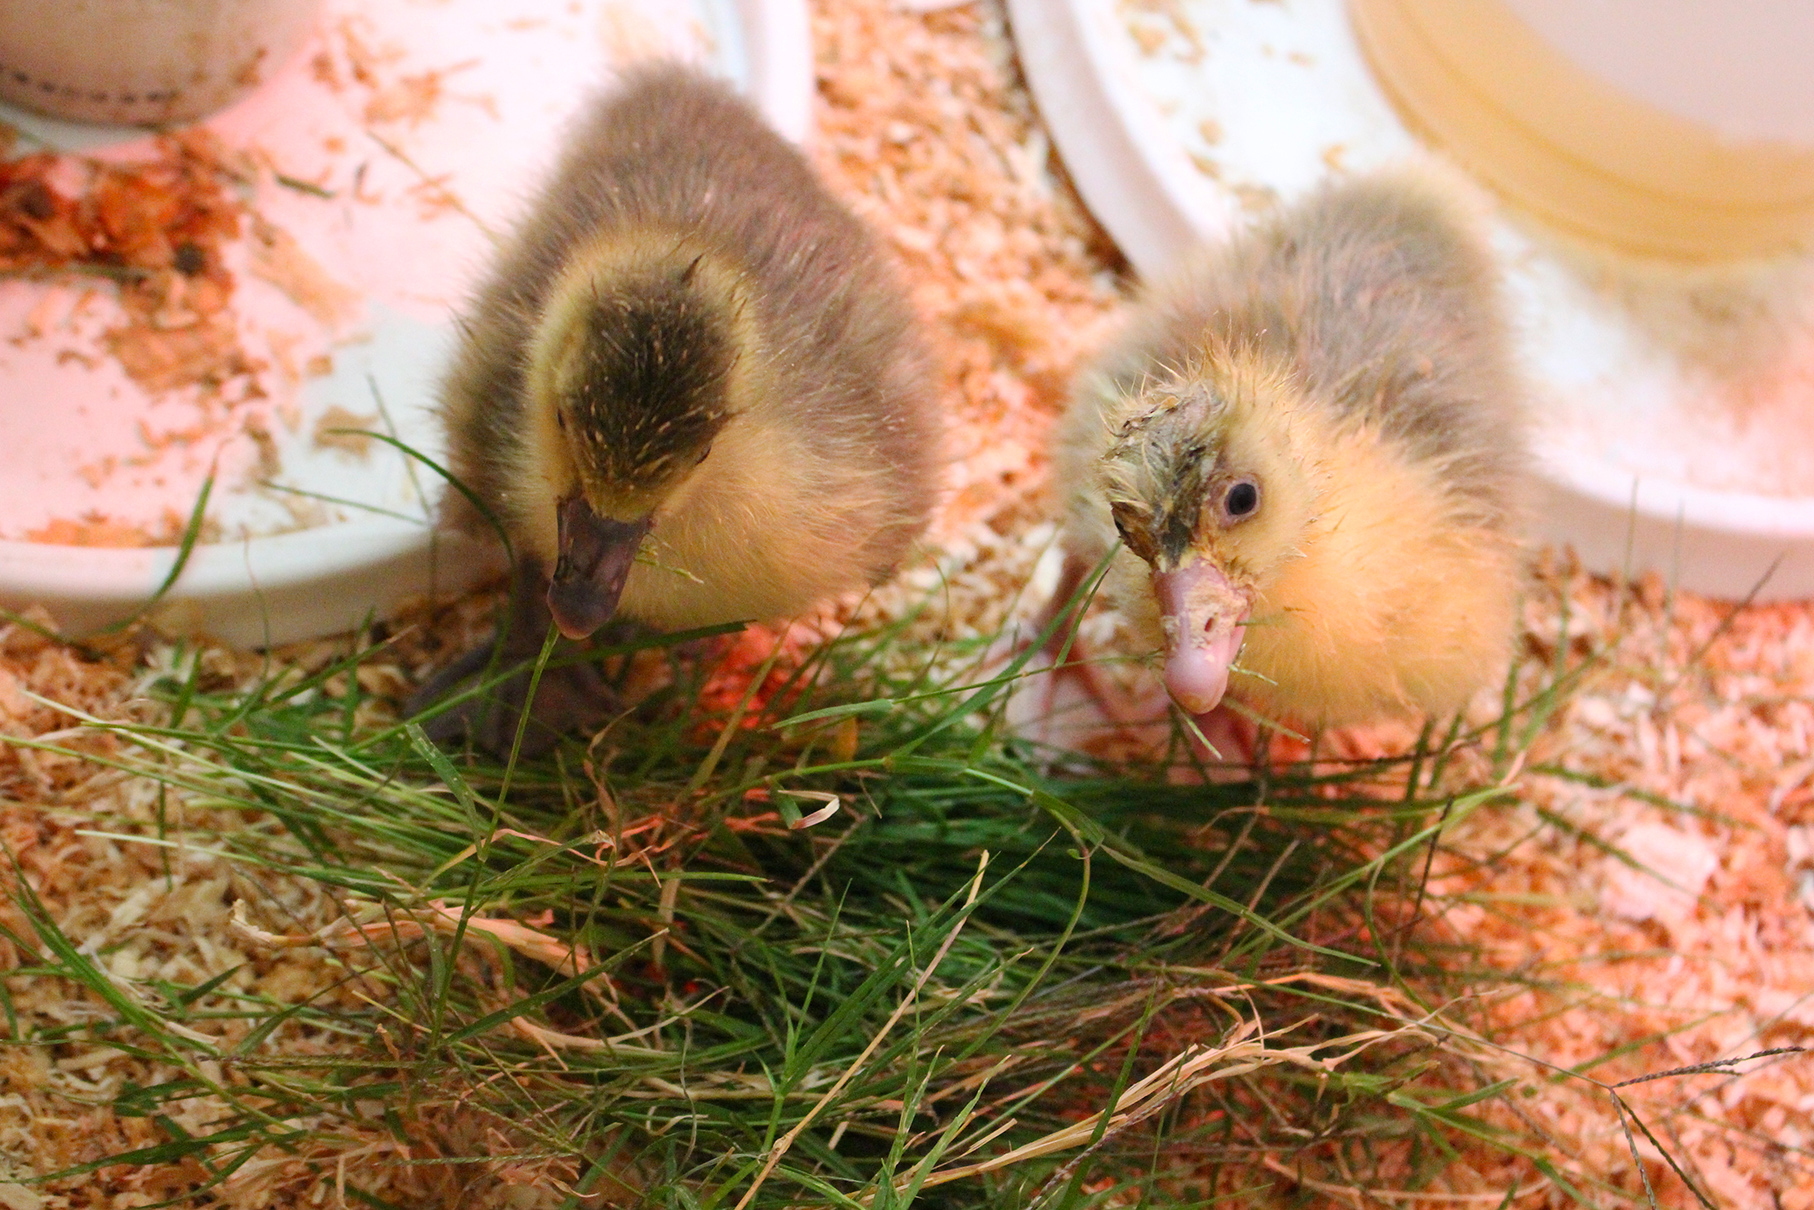 Here are 5 tips to take raising geese to the next level. These are simple tips you can apply to set your goslings on a path to a long, vigorous healthy life. Homesteading beyond the basics!